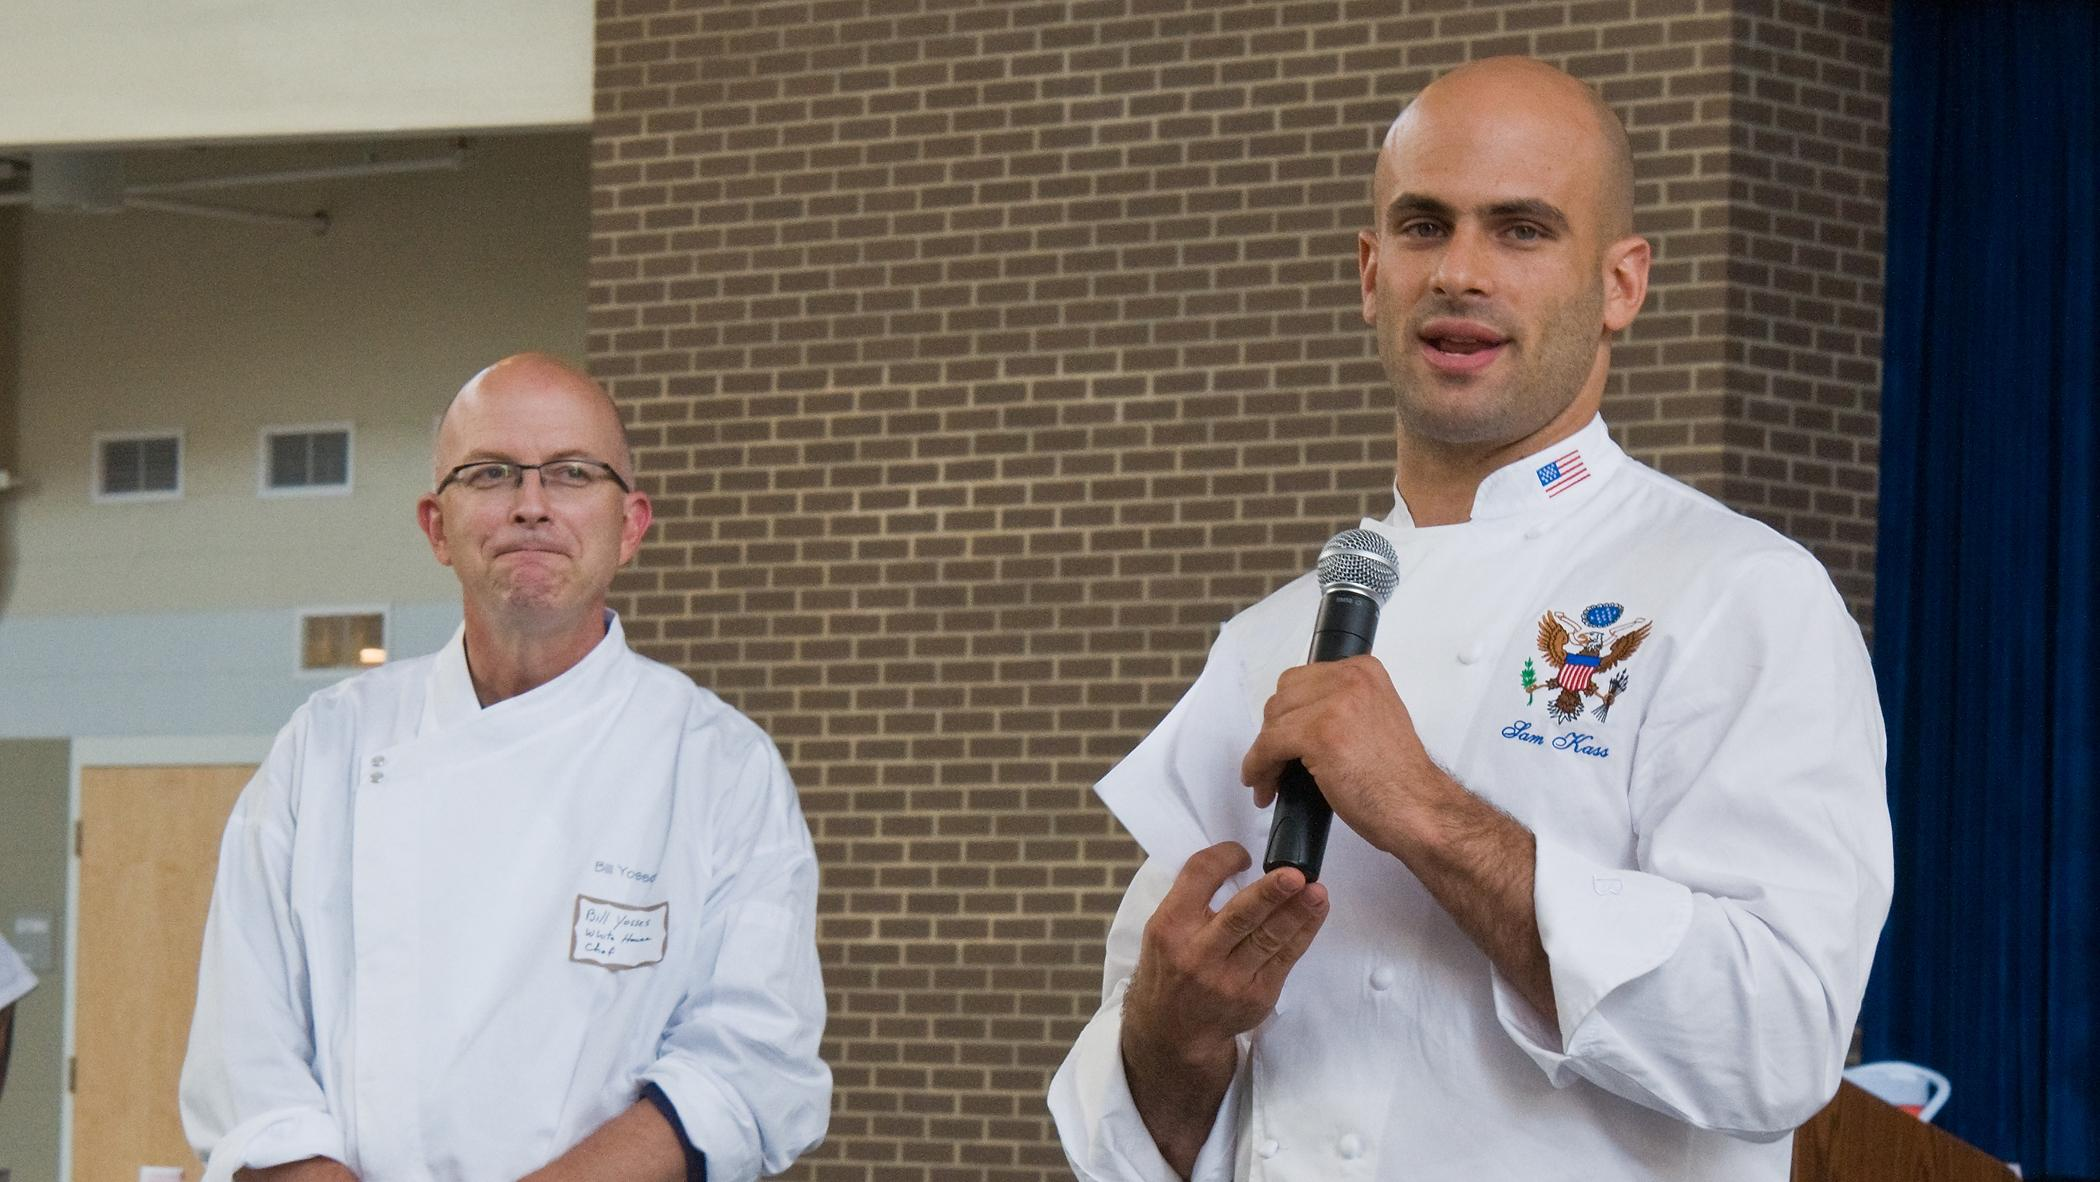 Sam Kass, right, speaks about healthy foods on Saturday. (U.S. Department of Agriculture / Flickr)